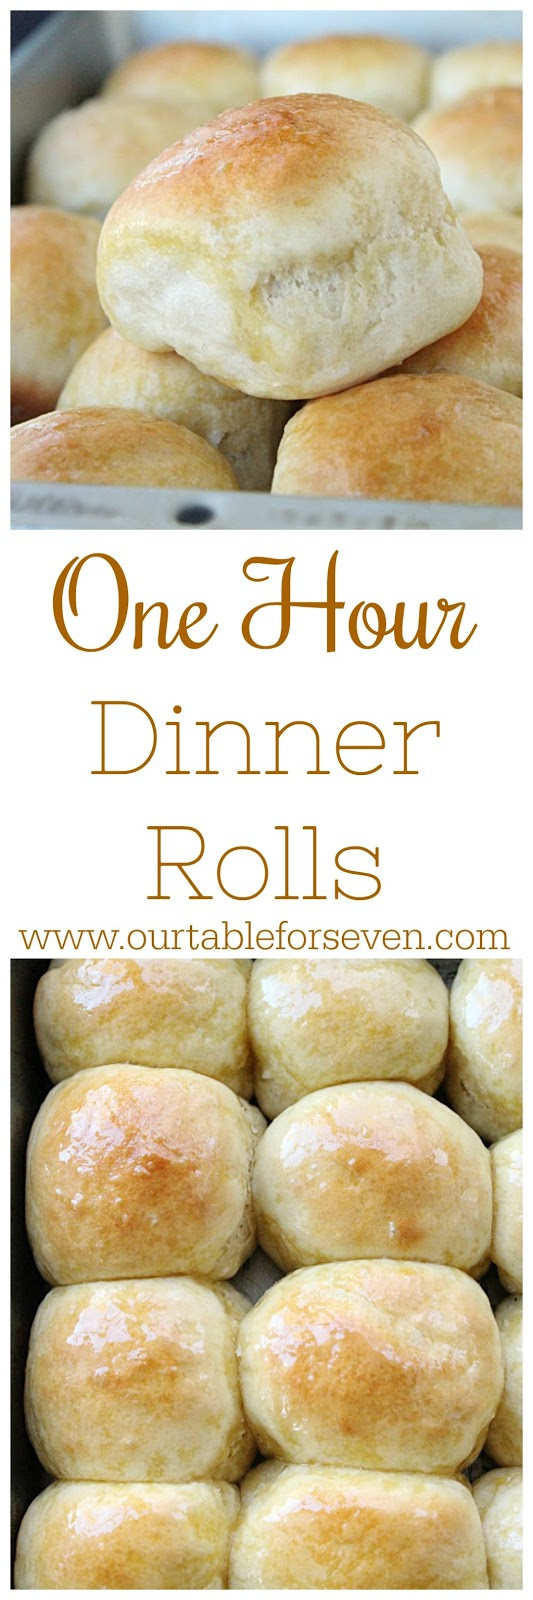 One Hour Dinner Rolls from Table for Seven